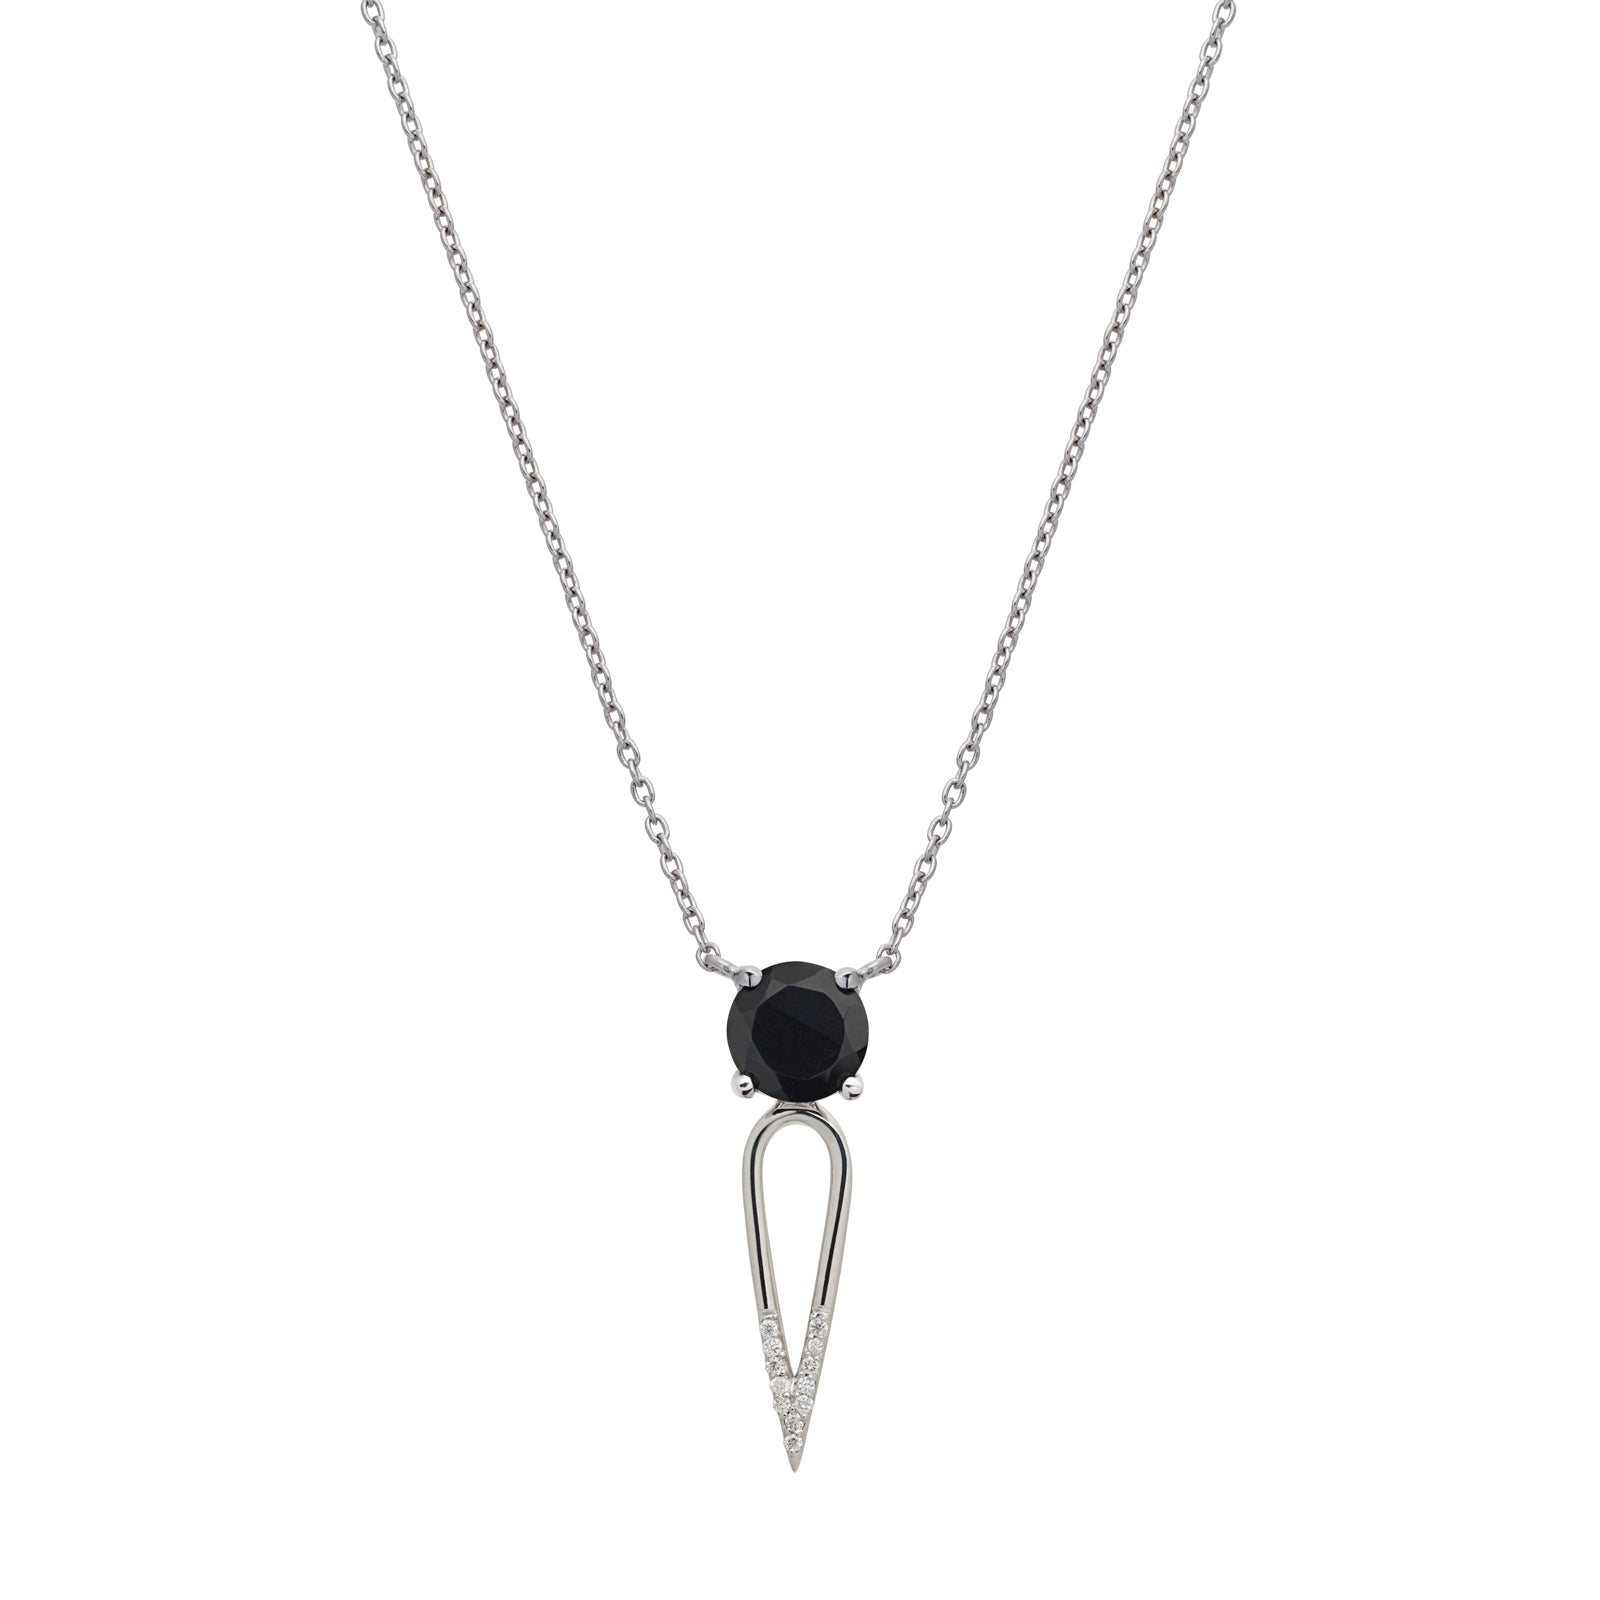 Irini Black Onyx gem stone diamond dipped dagger, sterling silver pendant, necklace, edgy yet elegant and the perfect gift, made in nyc